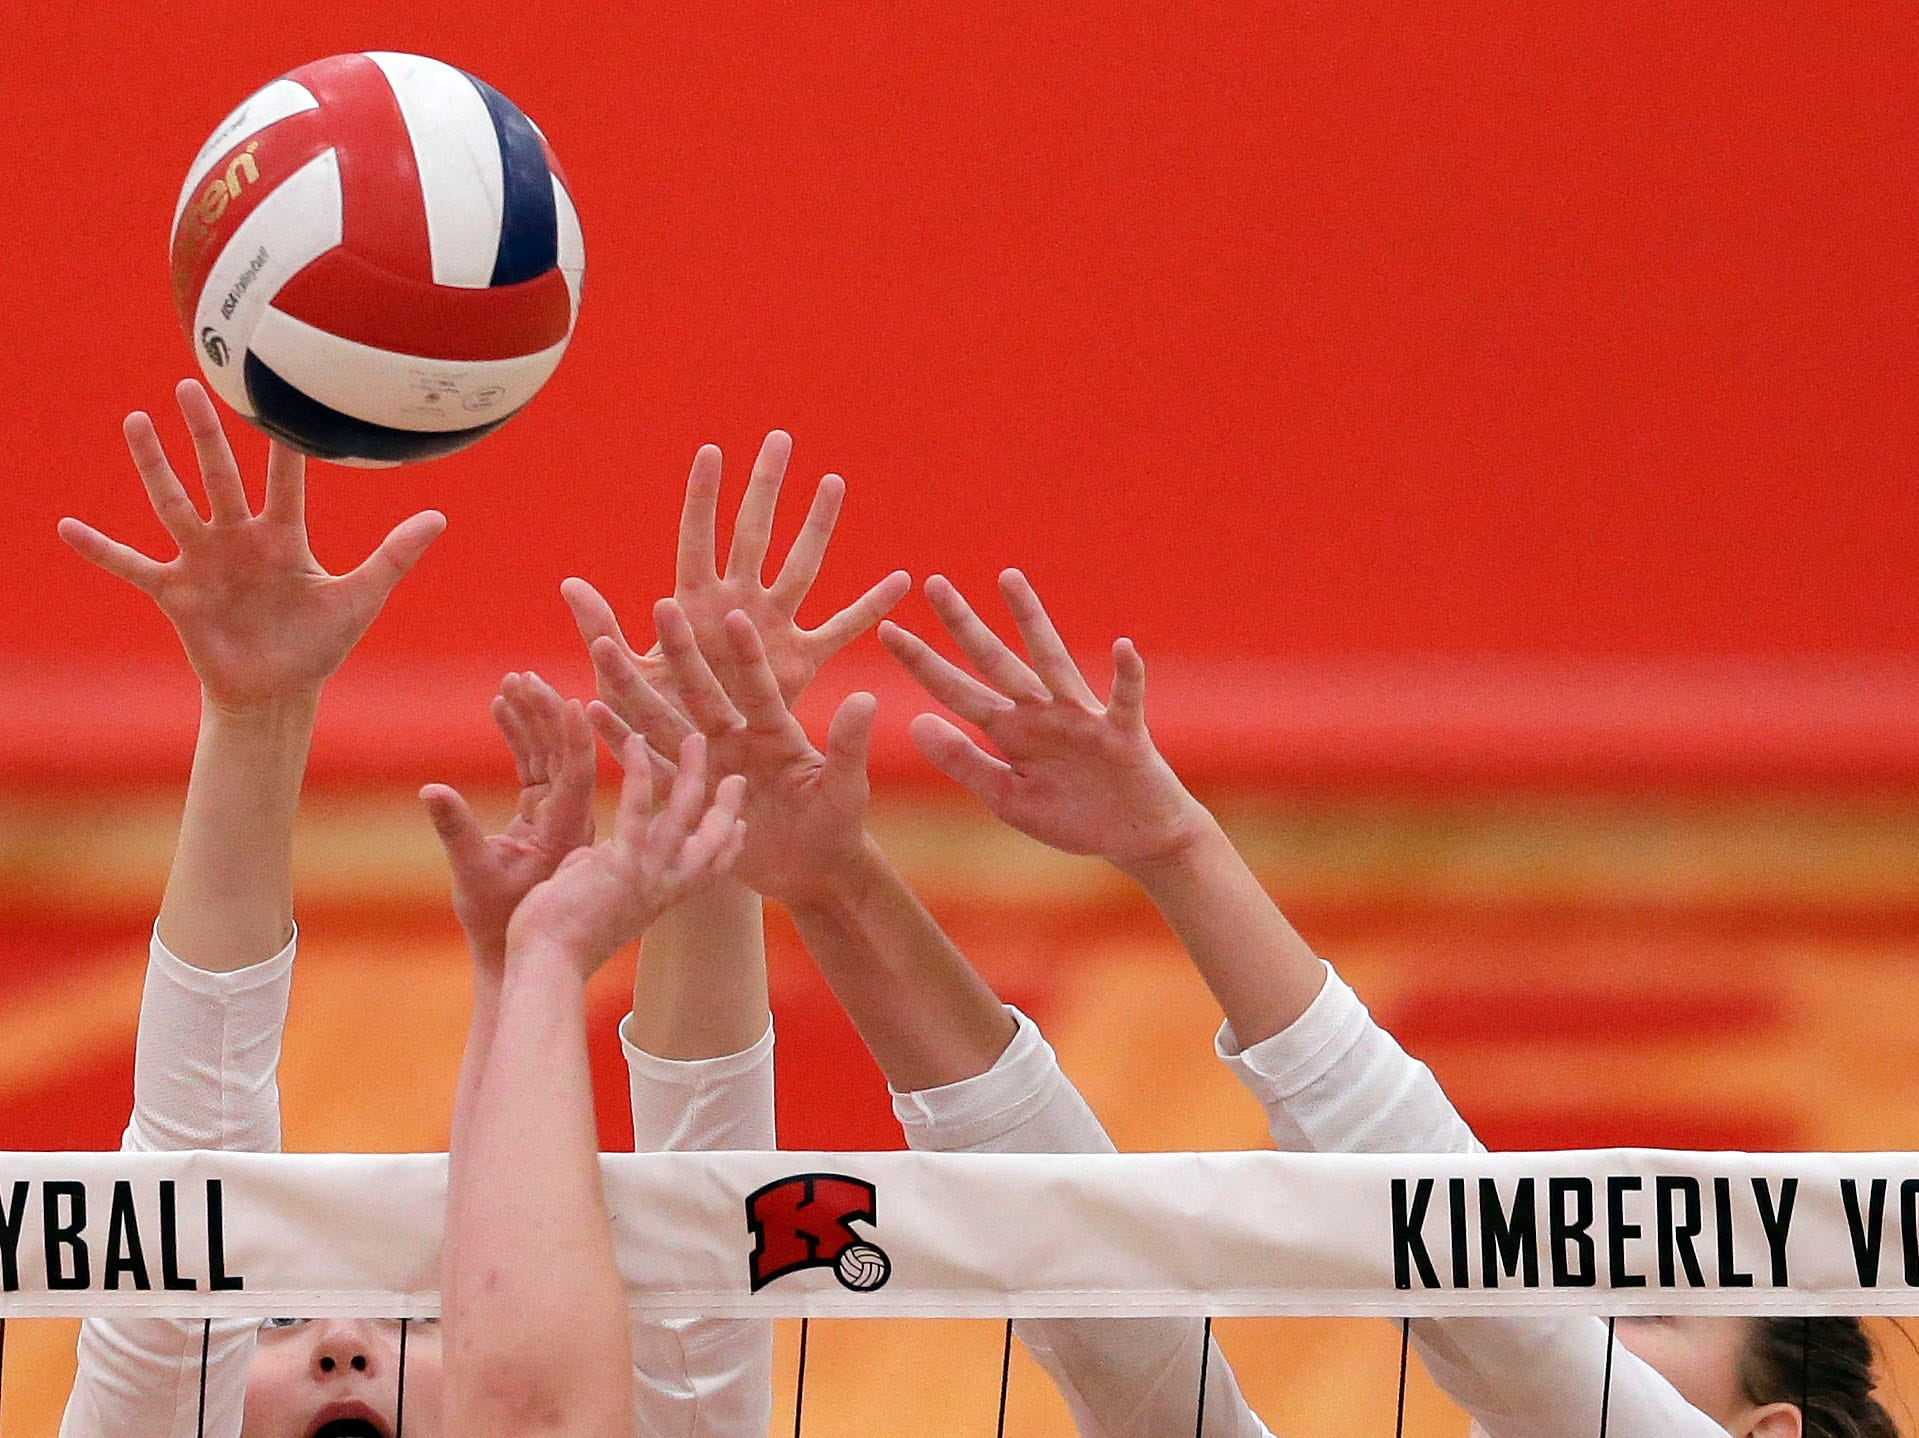 Tommy Albers of Neenah, front, and Maddy Schreiber, left, and Courtney Pearson of Kimberly meet at the net in FVA girls volleyball Tuesday, September 11, 2018, at Kimberly High School in Kimberly, Wis.Ron Page/USA TODAY NETWORK-Wisconsin